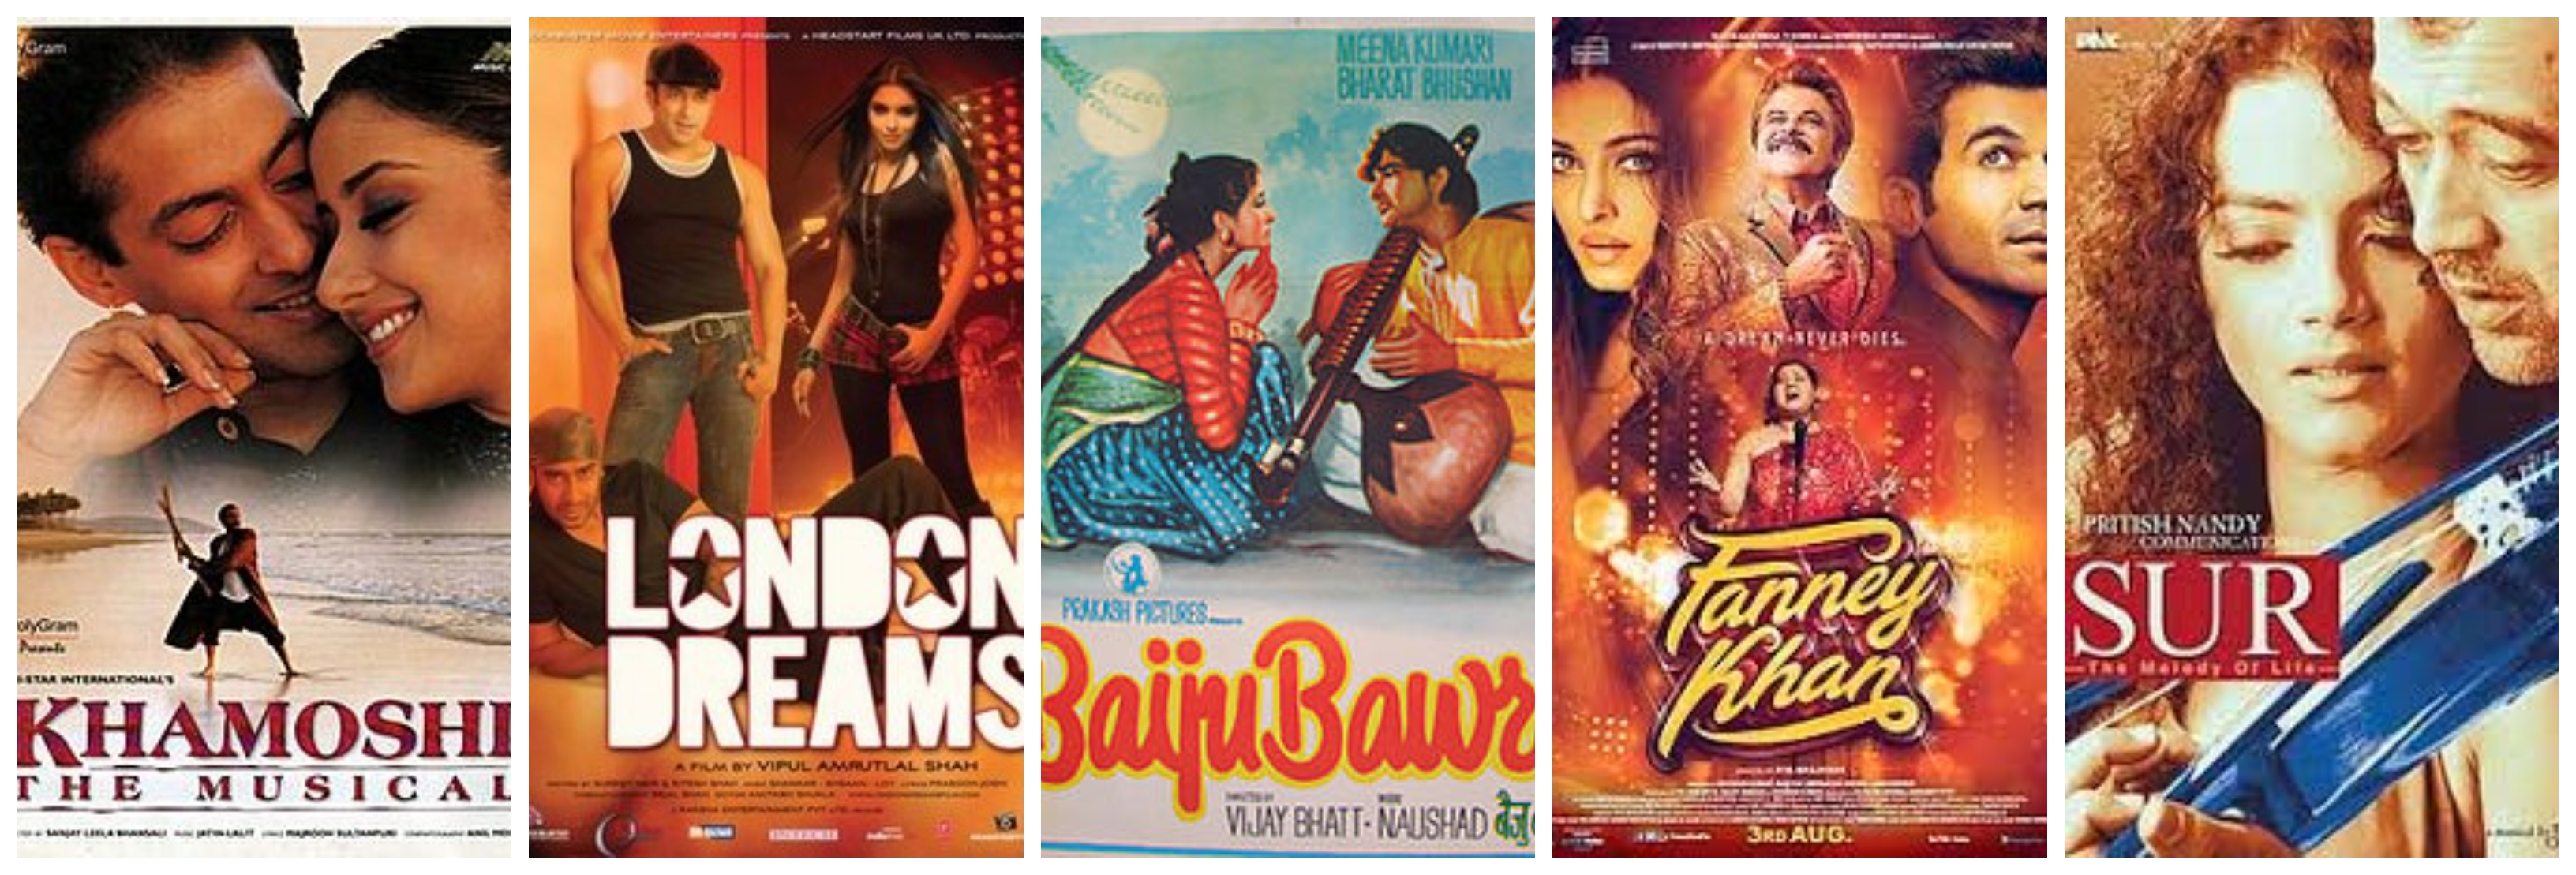 Music-based Bollywood movies